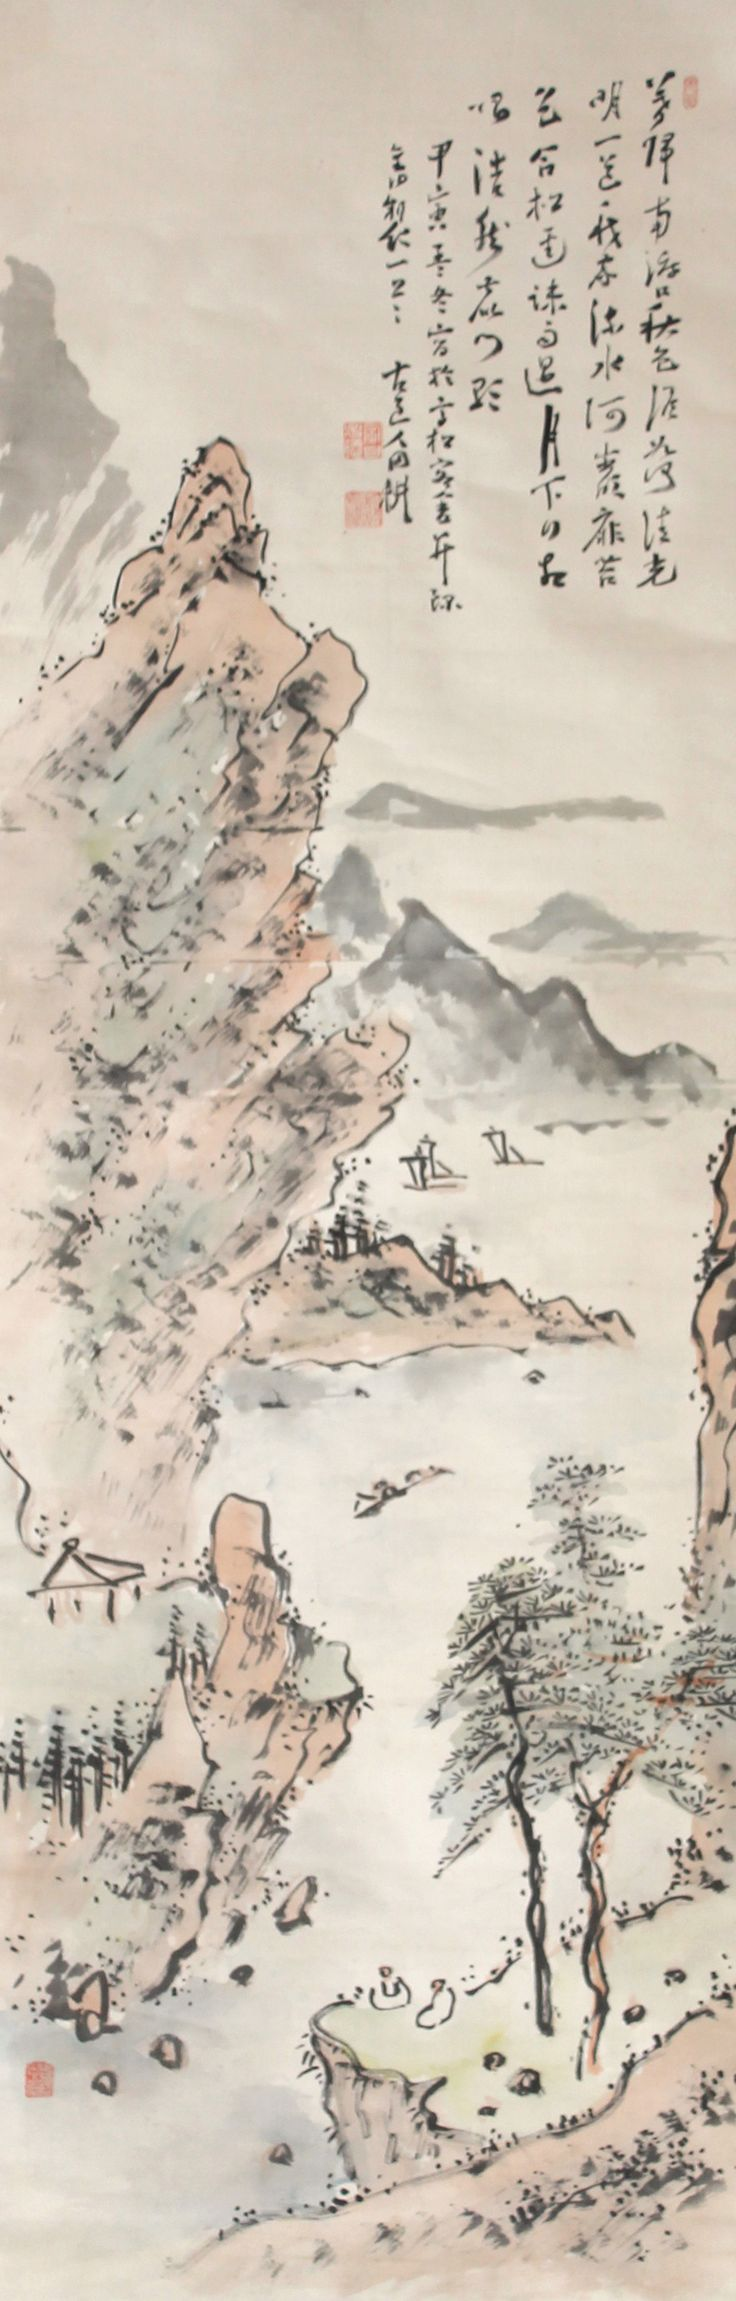 """Fukuda Kodojin   Landscape painting/poem At evening I return by the south-ferry mouth, autumn colors too limpid to describe.  The pure moonlight illuminates teh One Way: my home sits on a slope beside flowing waters. At the cliffside gateway moss-color converge; pine tree paths are washed by sprarse rains. Beneath the moon I walk and sing out loud Meng Haoran's """"Deergate Song""""."""